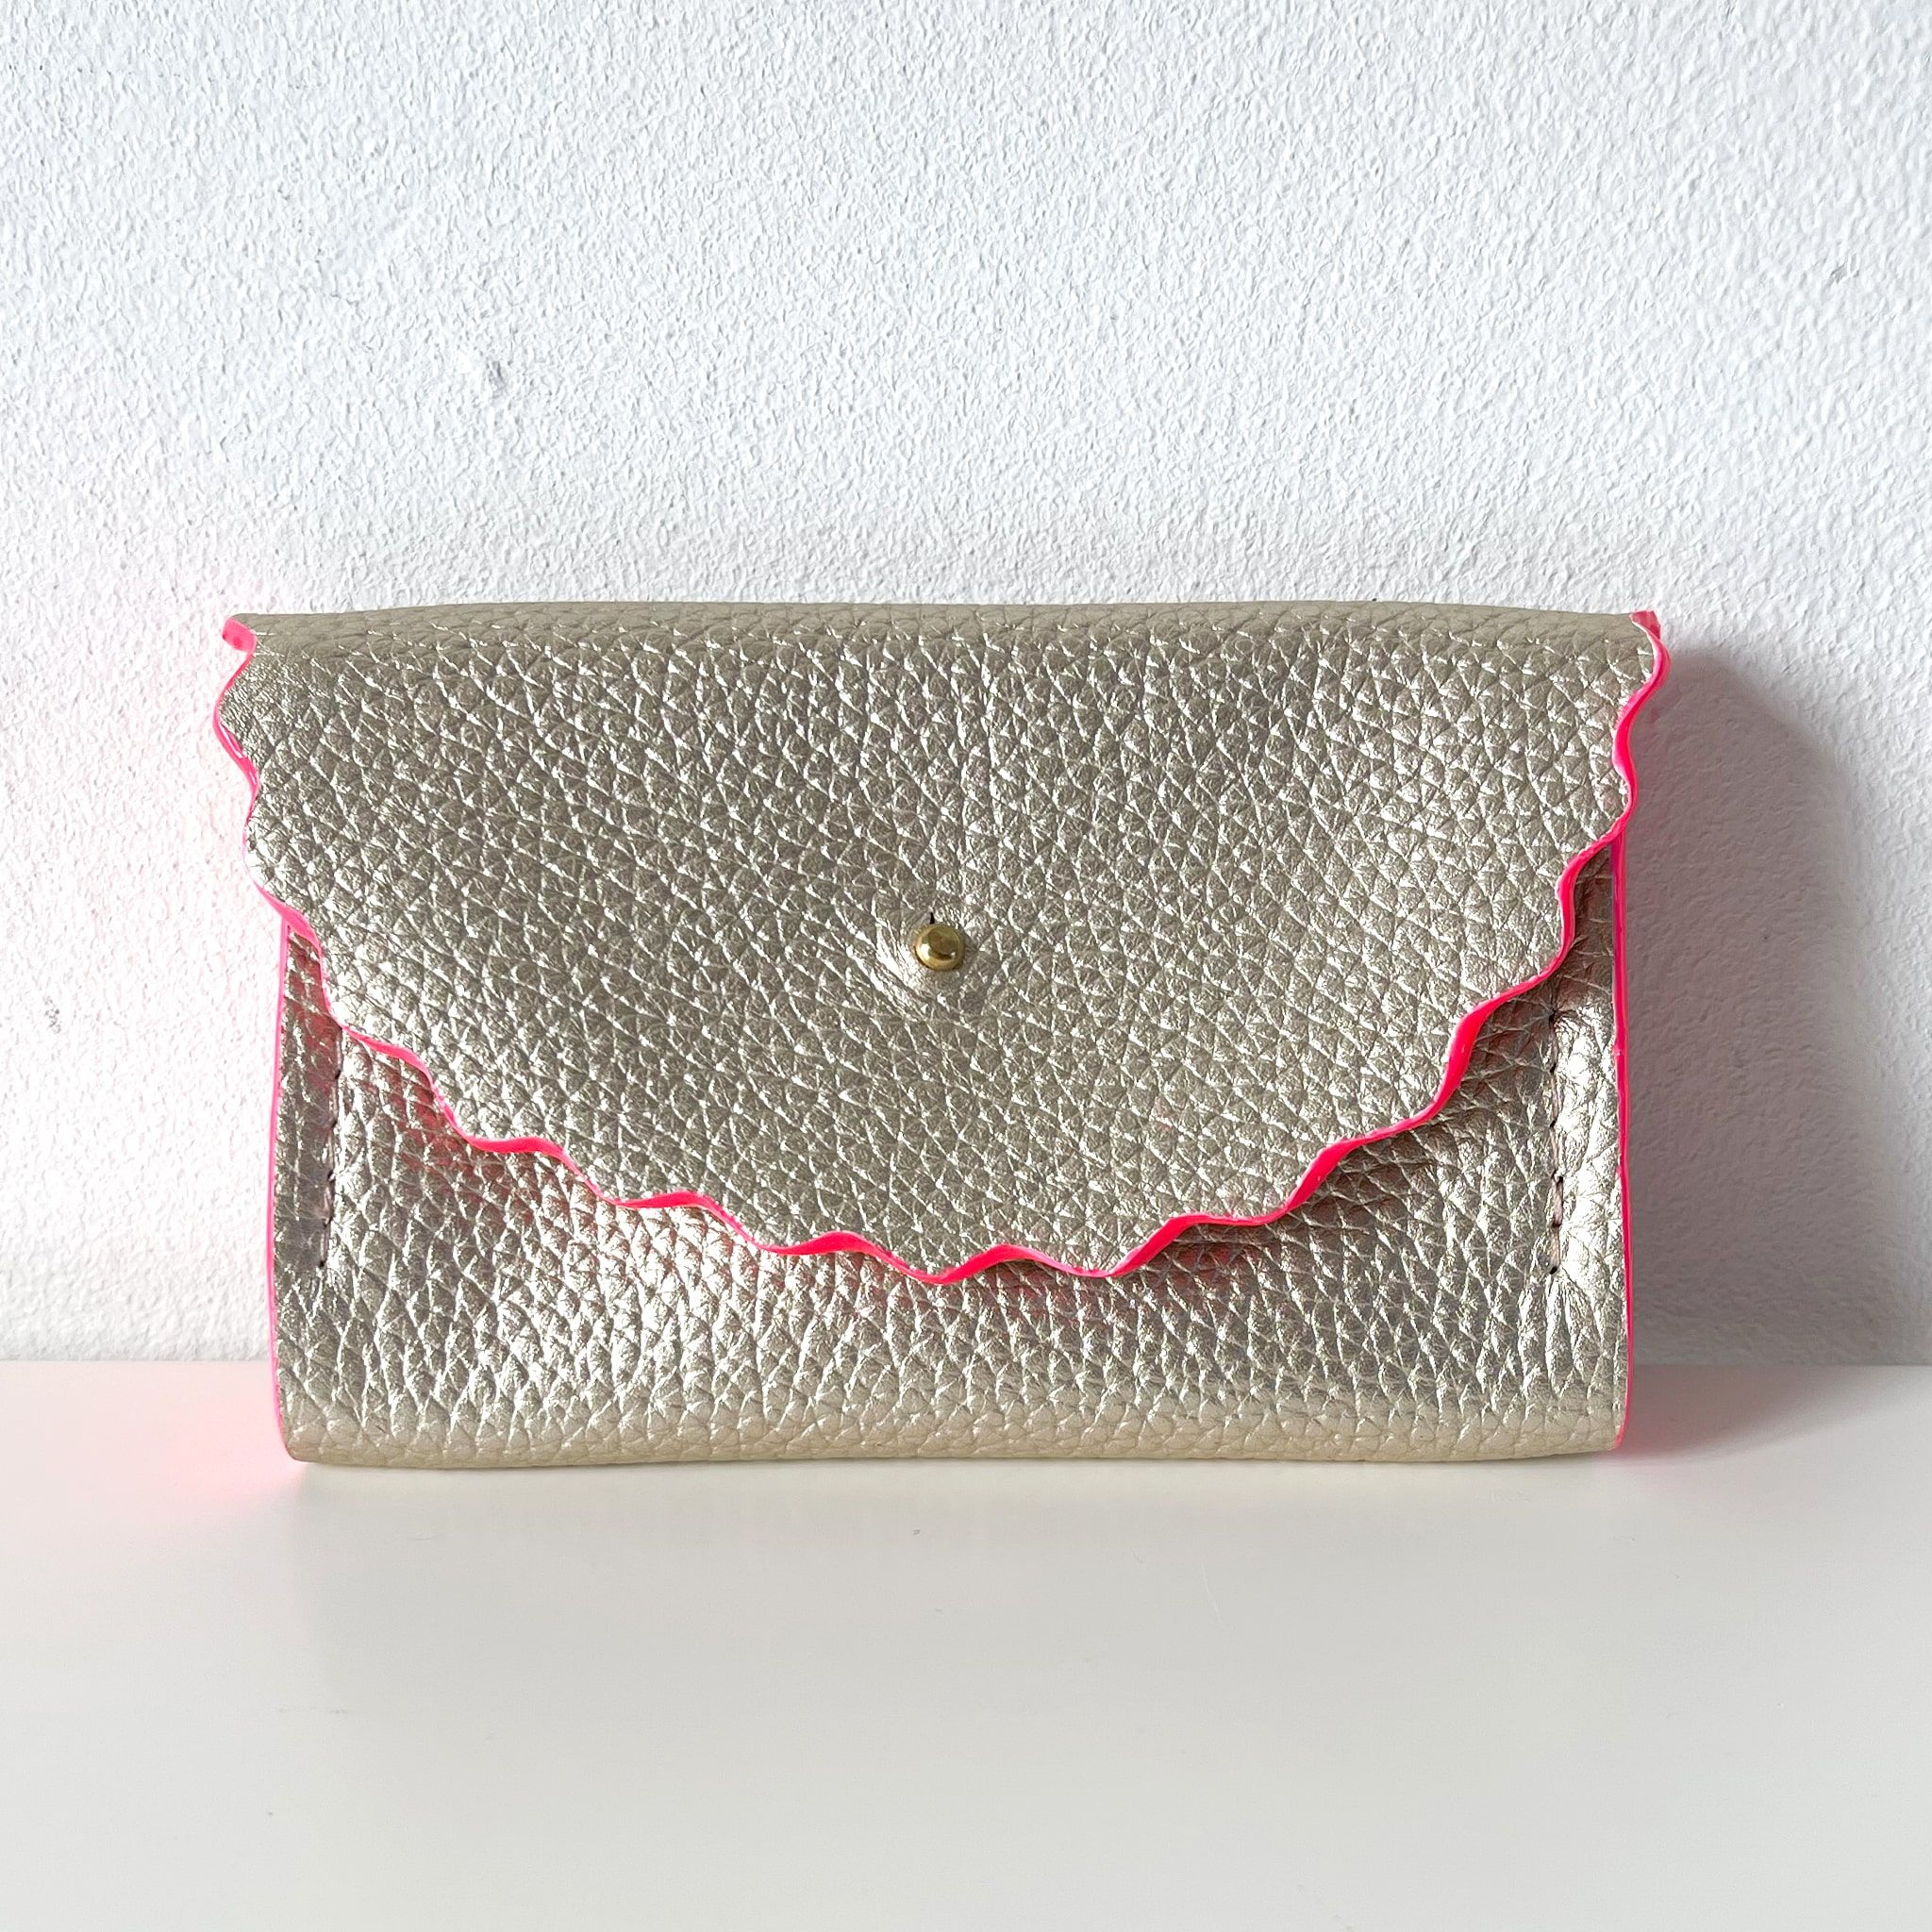 Champagne Silver Dora Purse with Neon Pink Edges